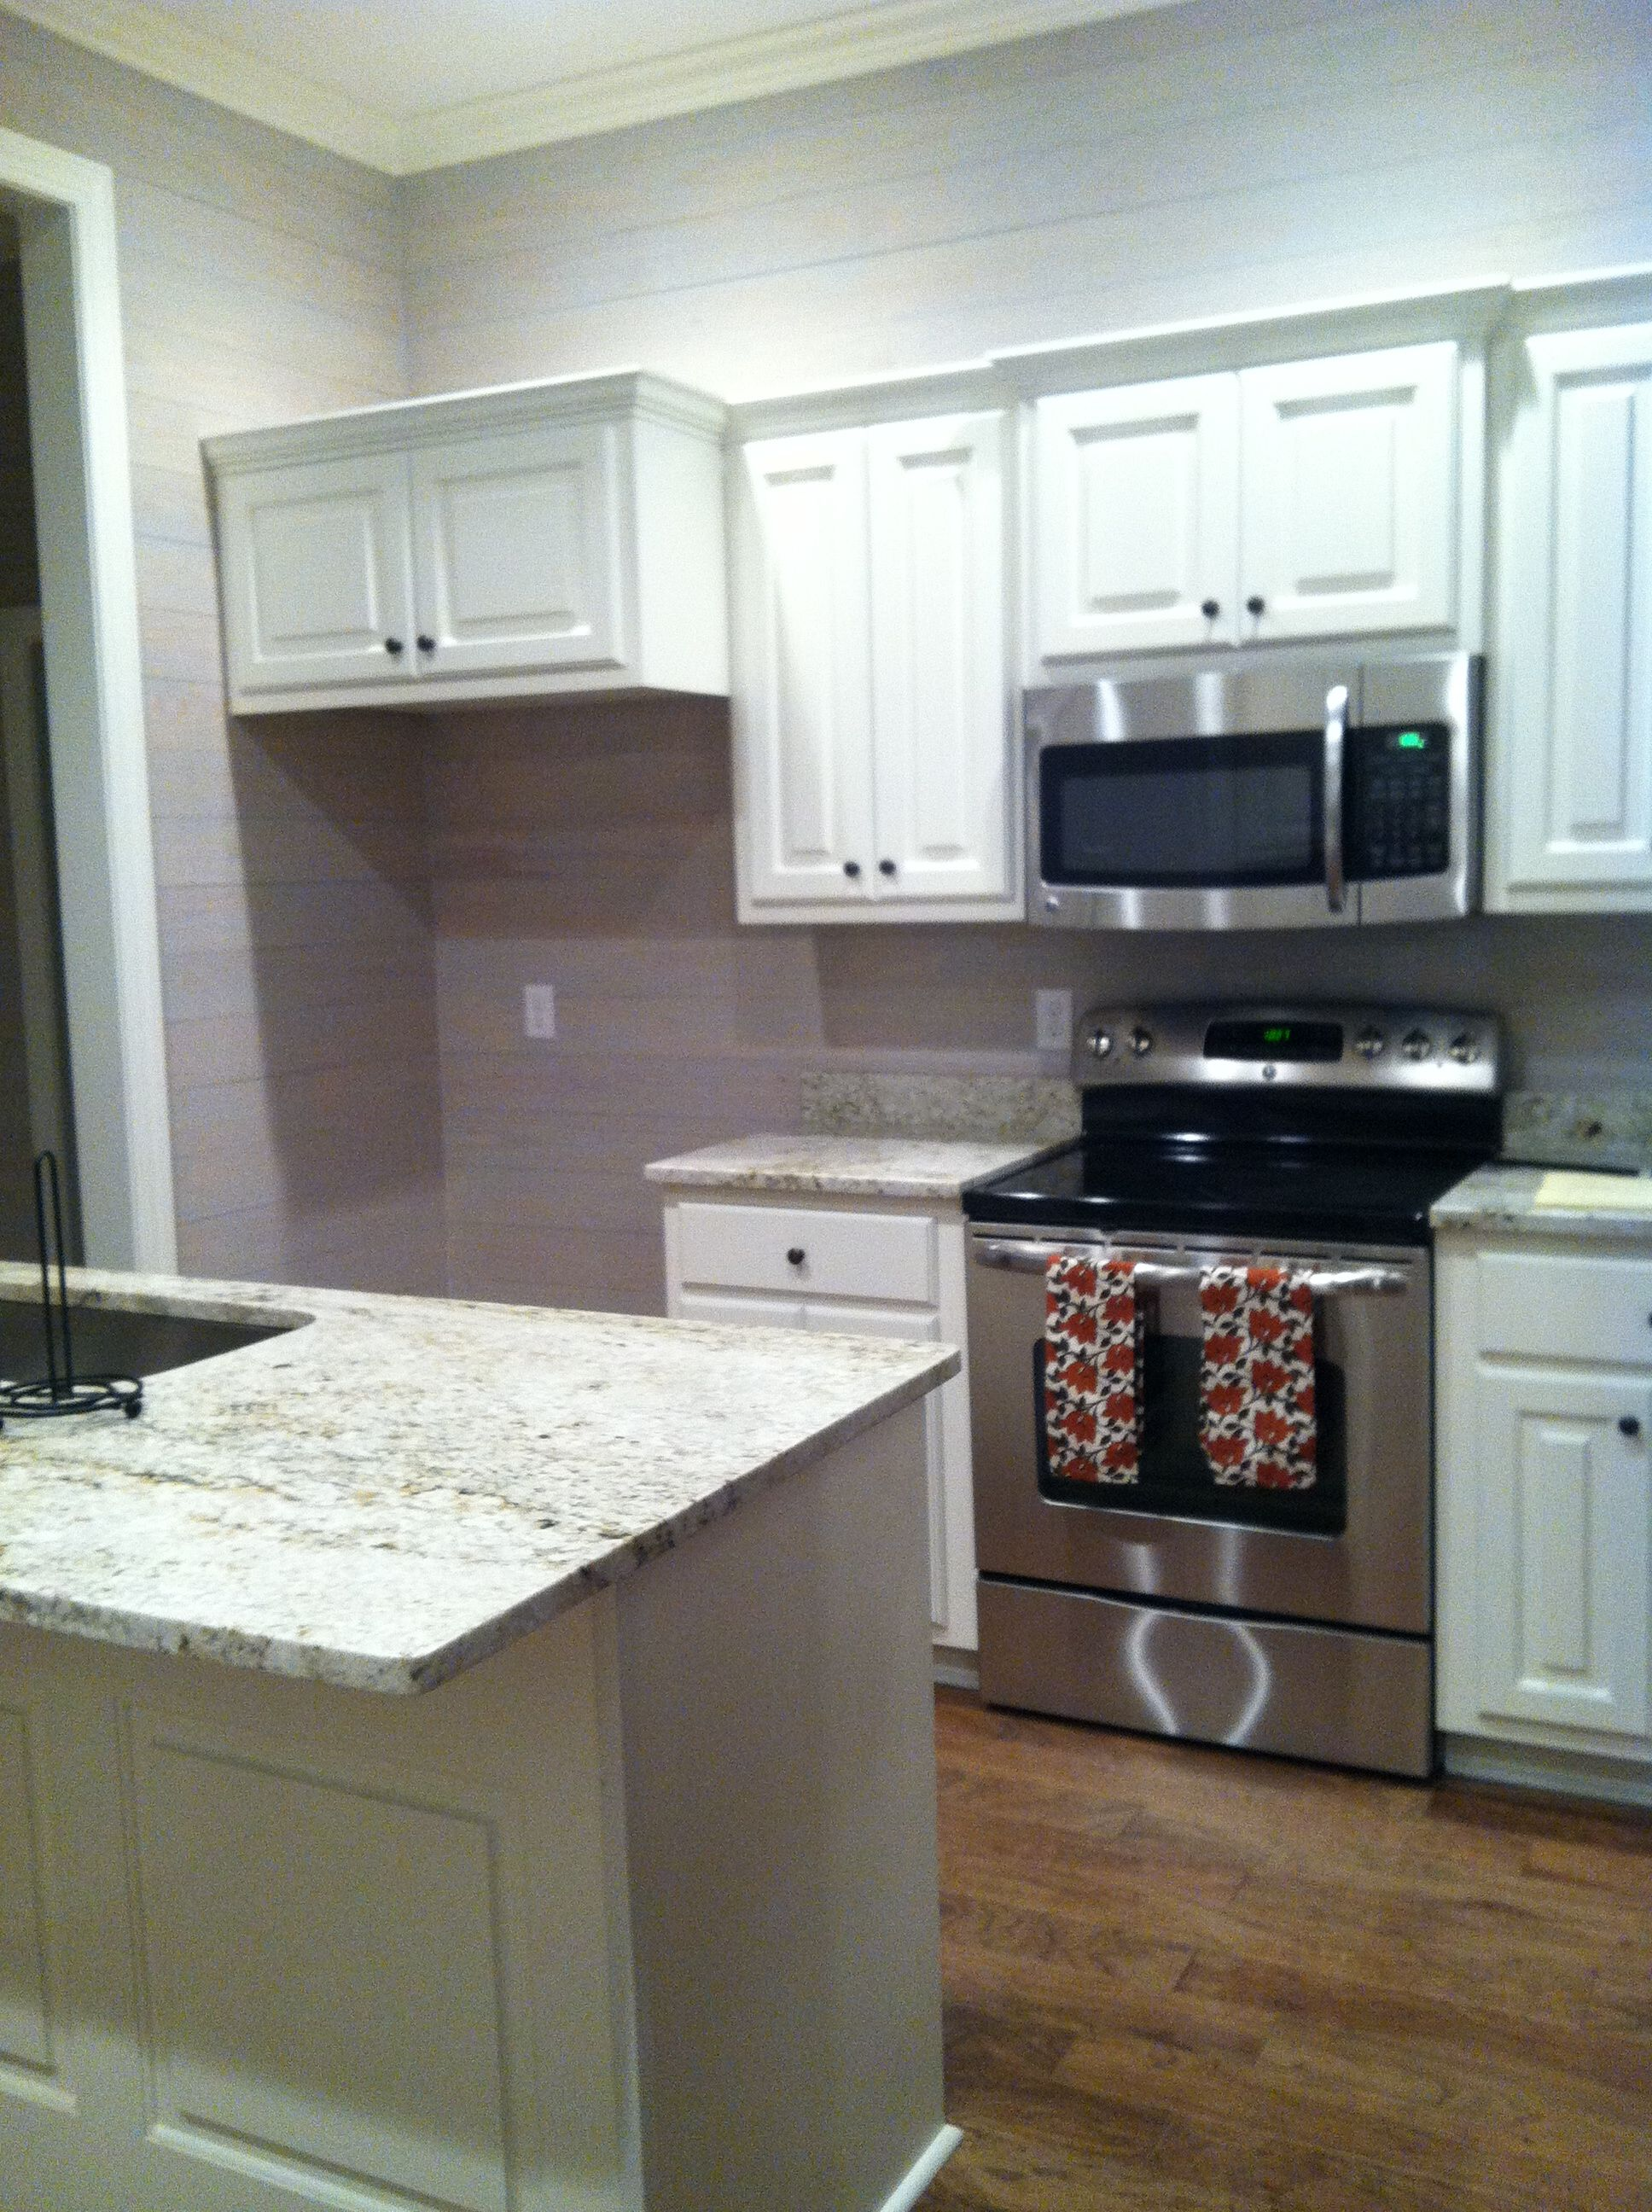 Best Lake Kitchen Finished Sw Comfort Gray Walls Colonial 400 x 300